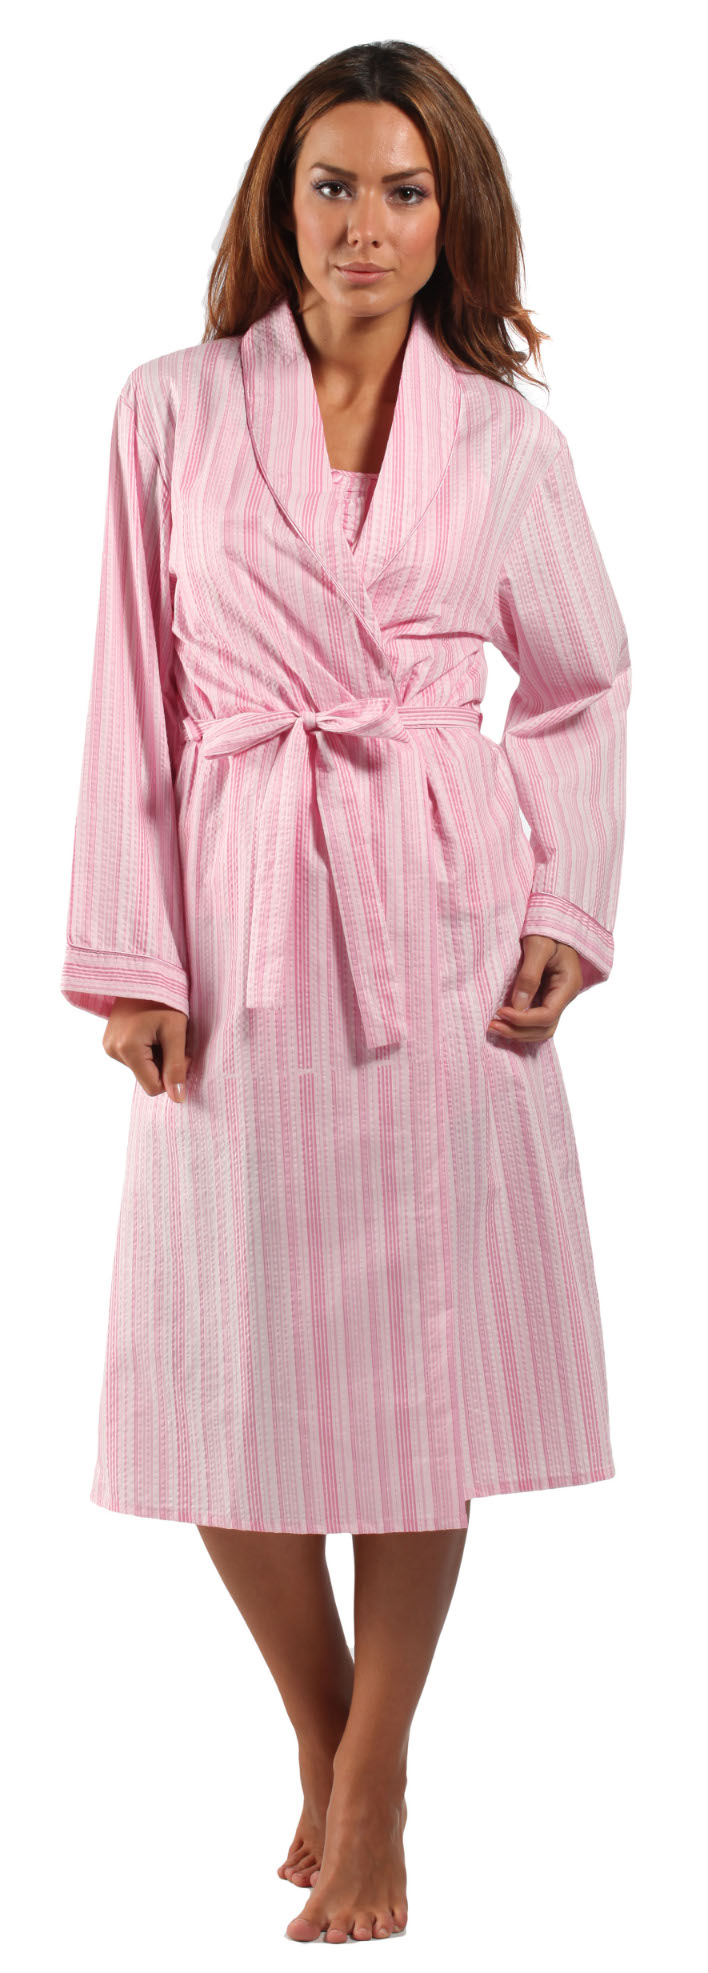 Lightweight Womens Dressing Gown - Best Gowns And Dresses Ideas ...